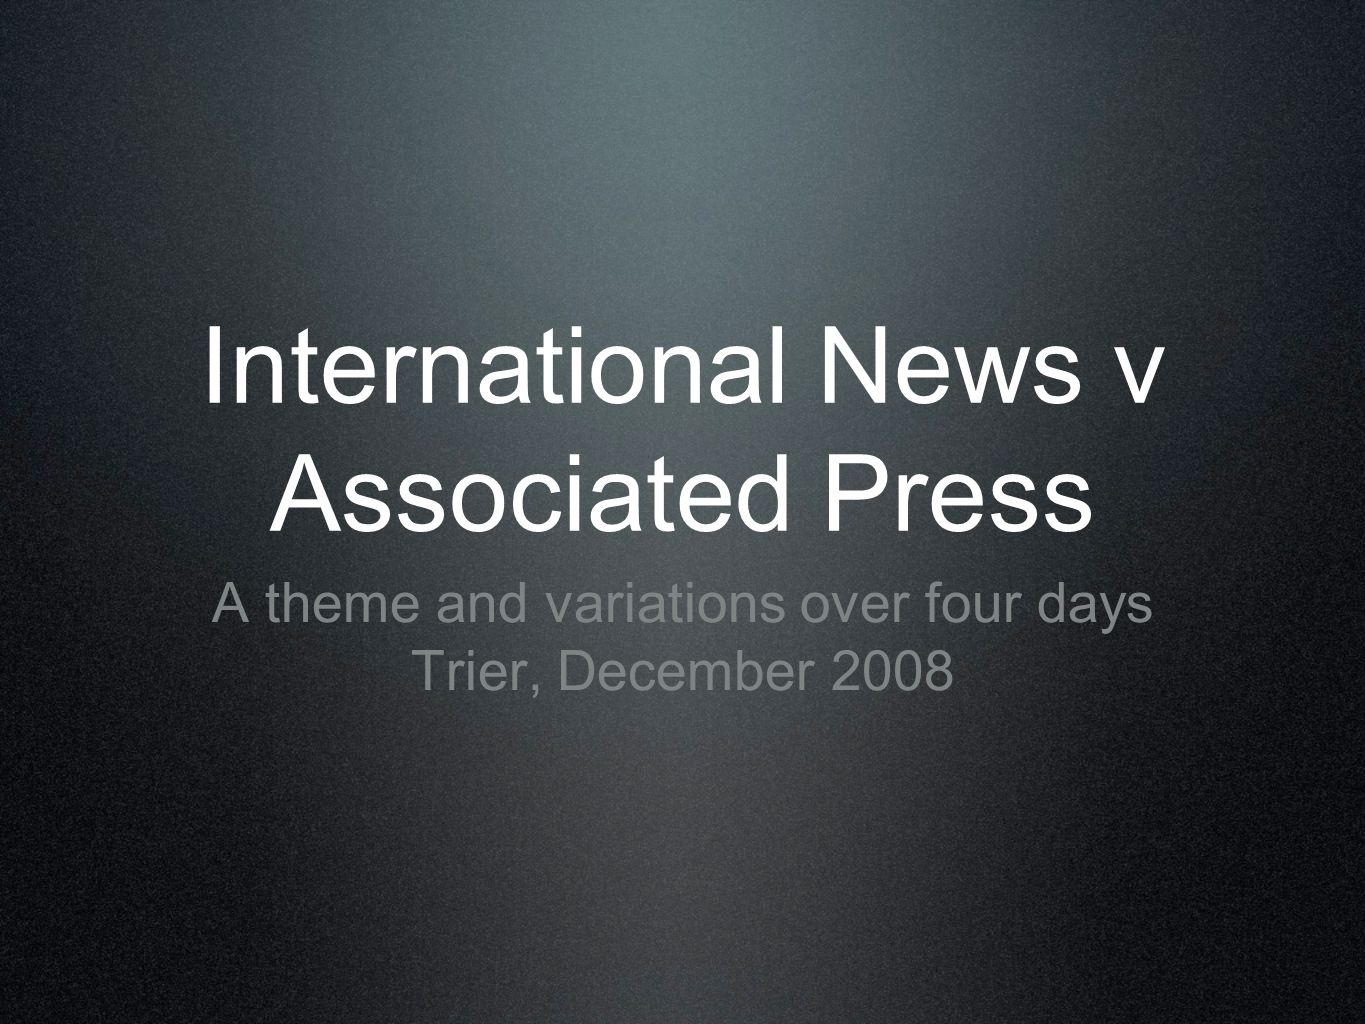 International News v Associated Press A theme and variations over four days Trier, December 2008